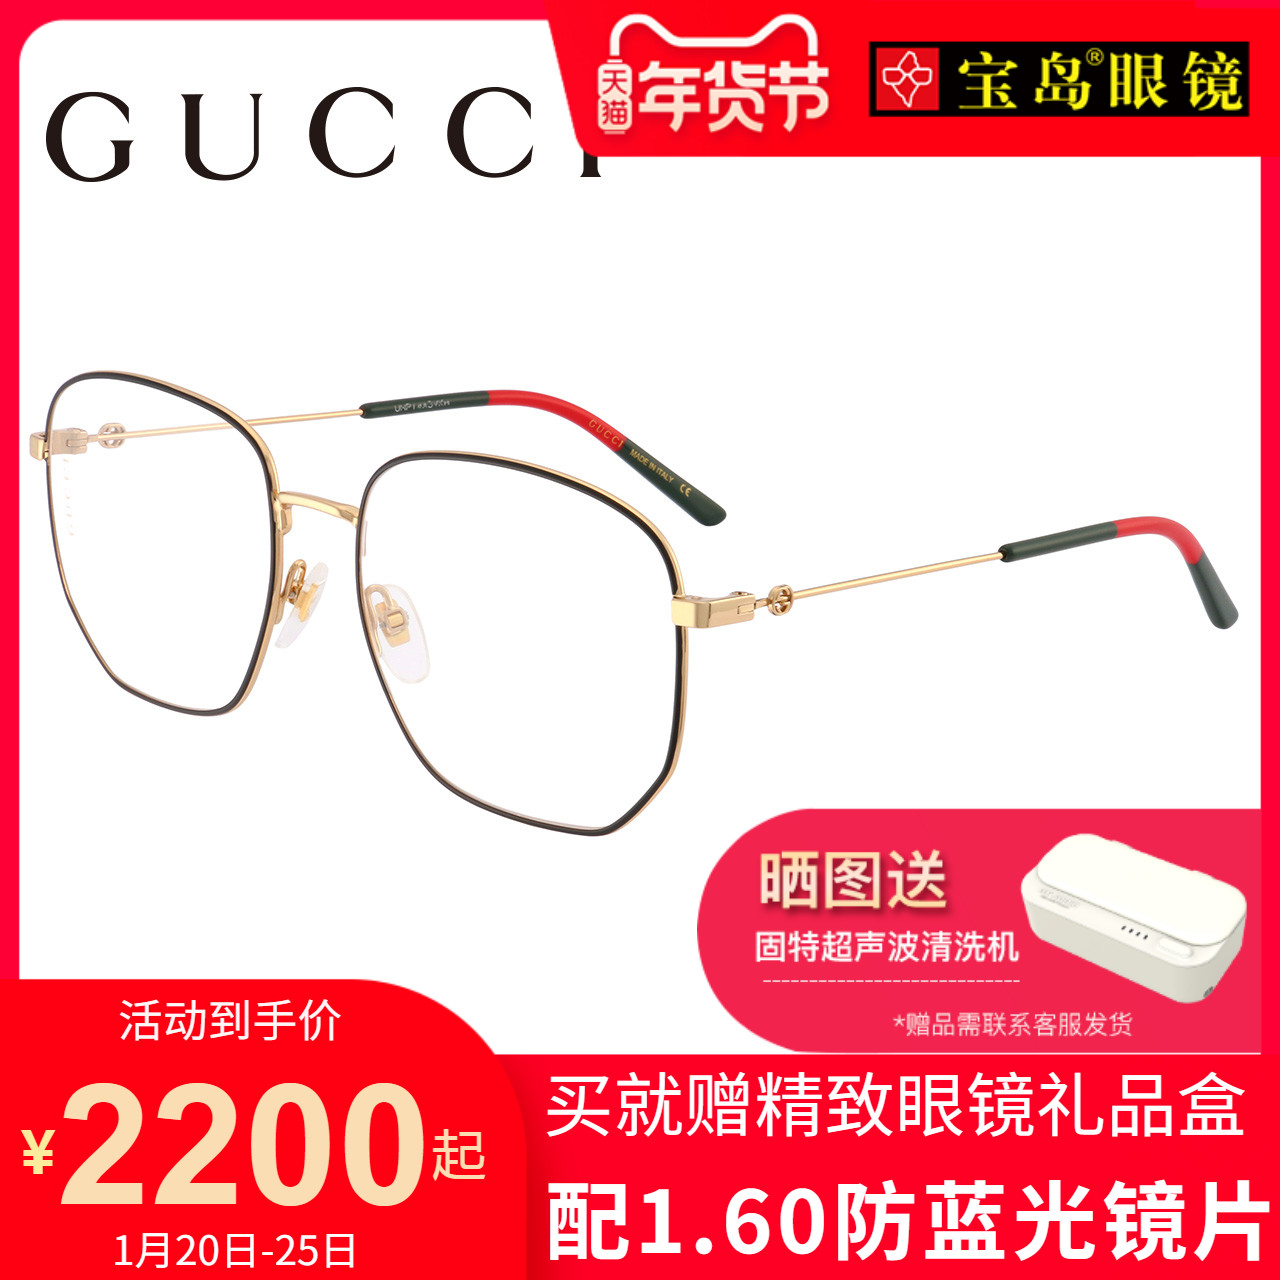 Ni Ni's same Gucci spectacle frame for men and women with large frame for myopia